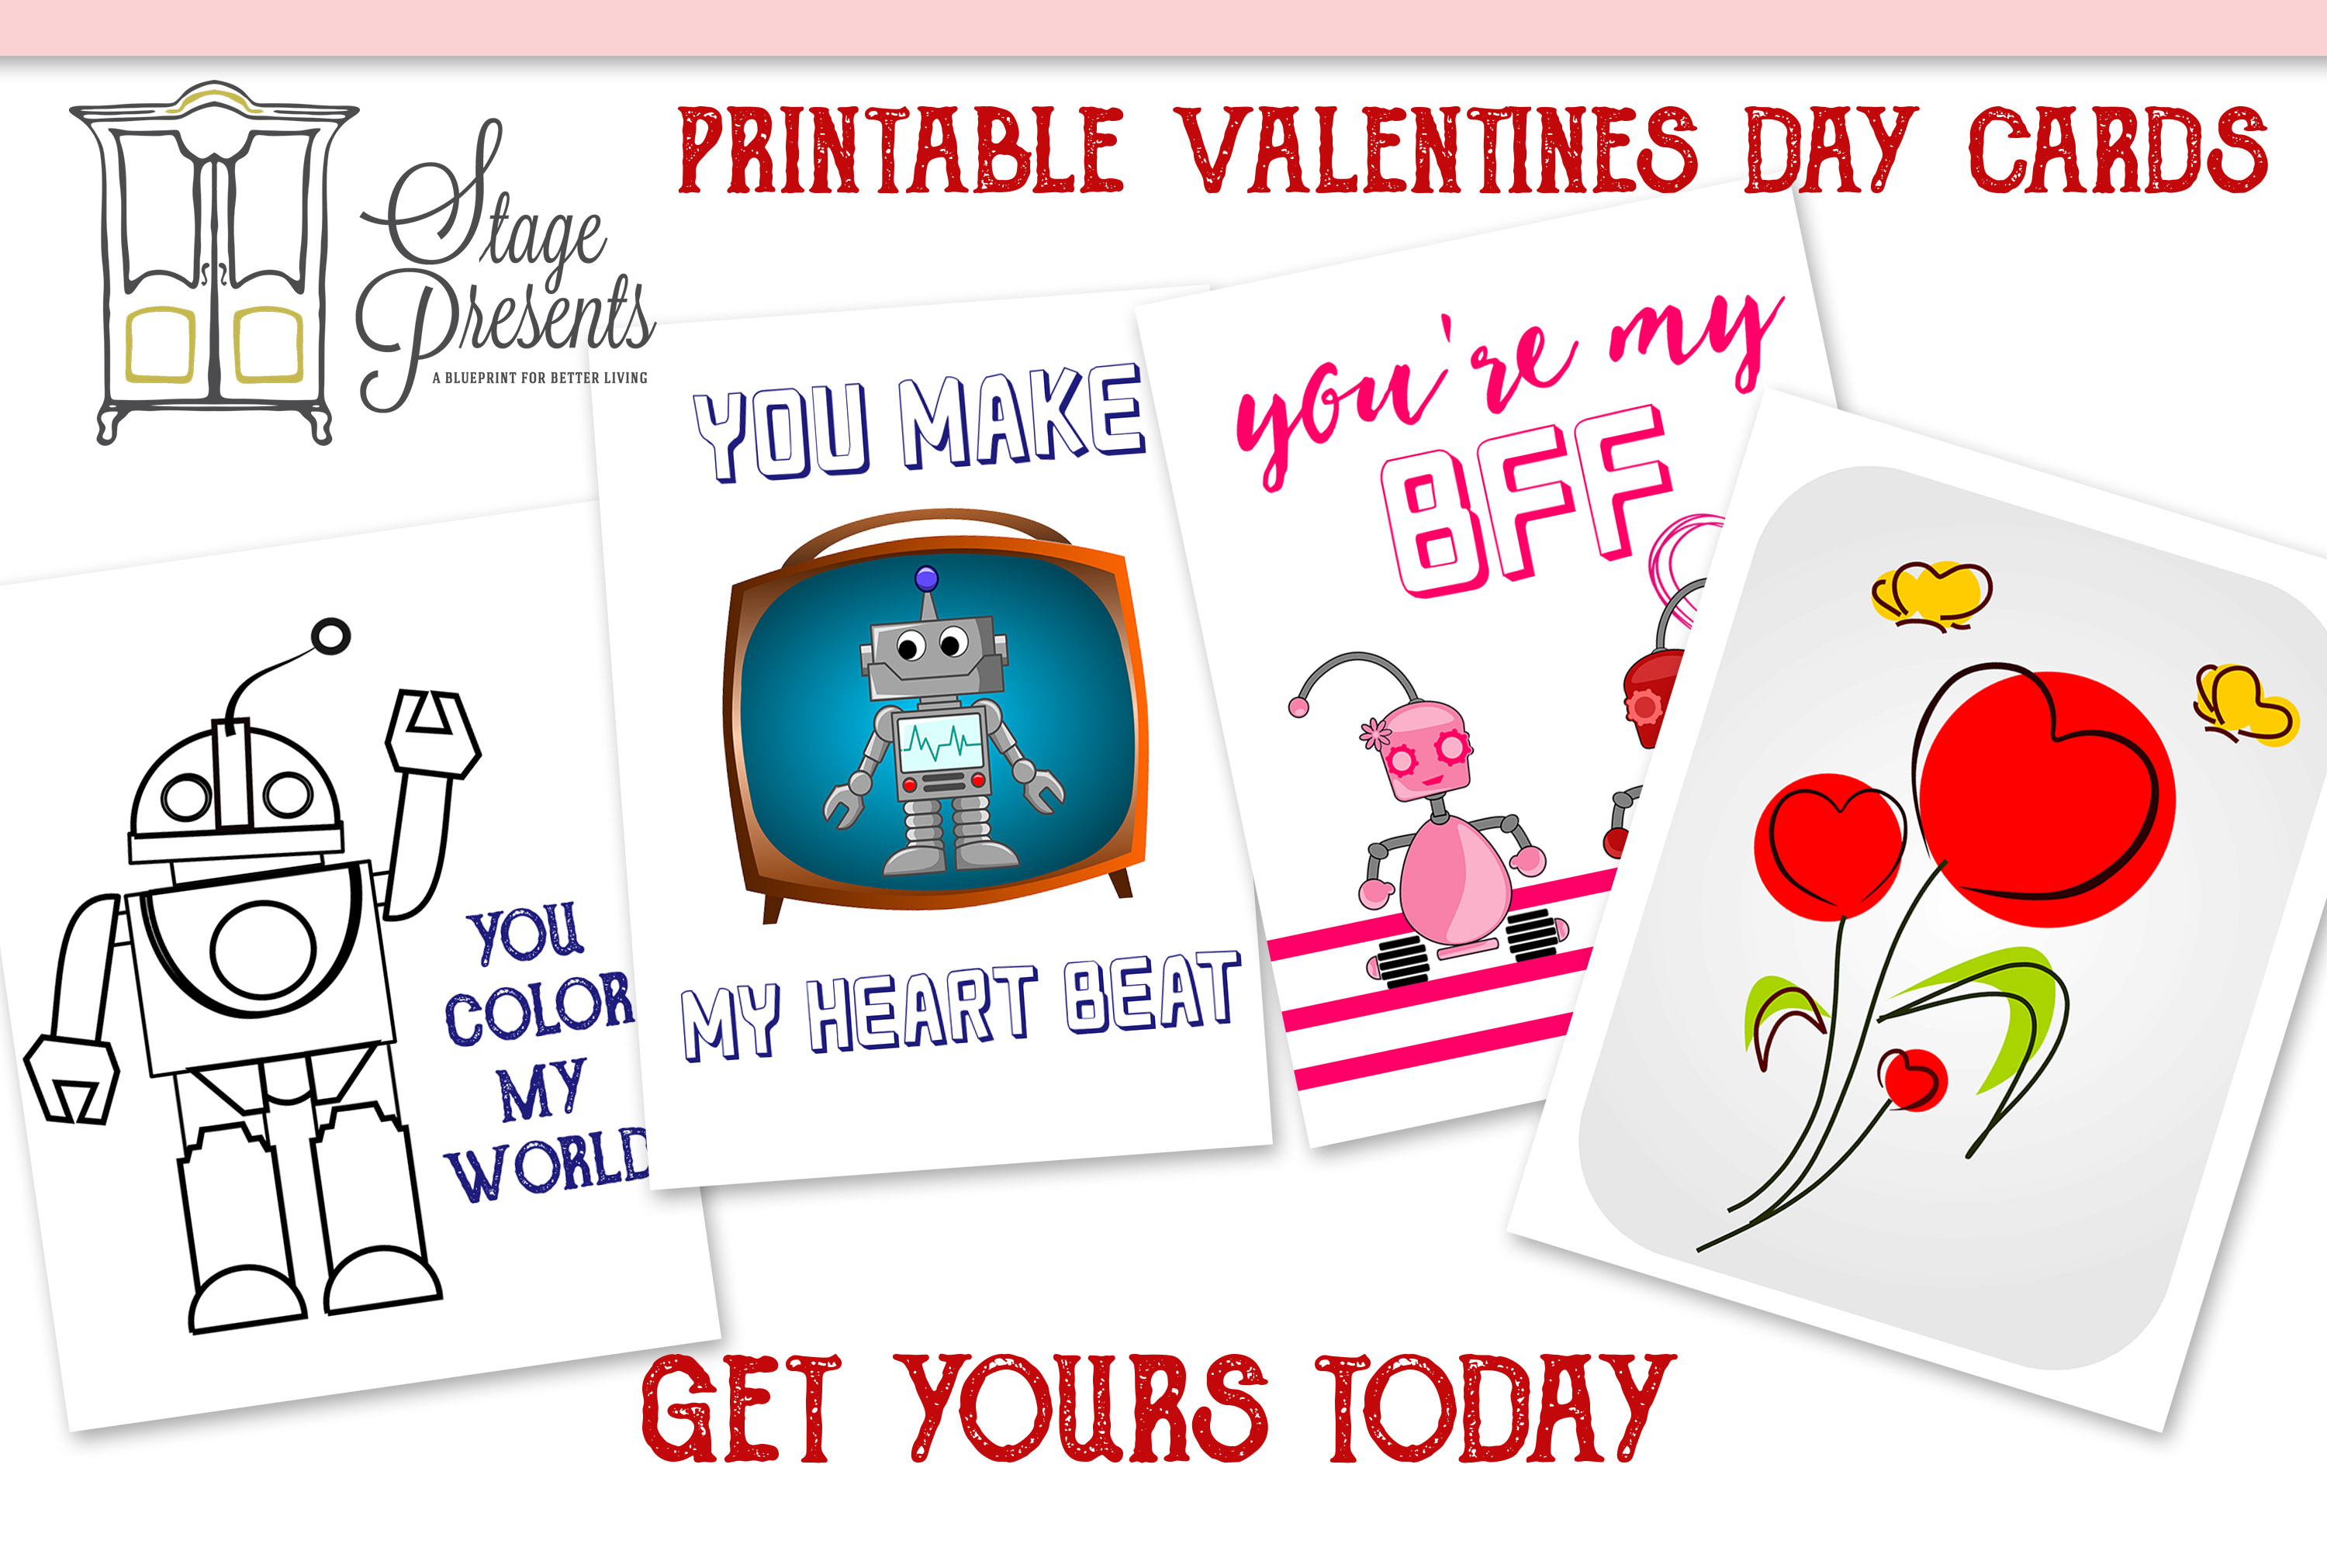 Free Printable Valentines Day Cards 2016 stage-presents.com